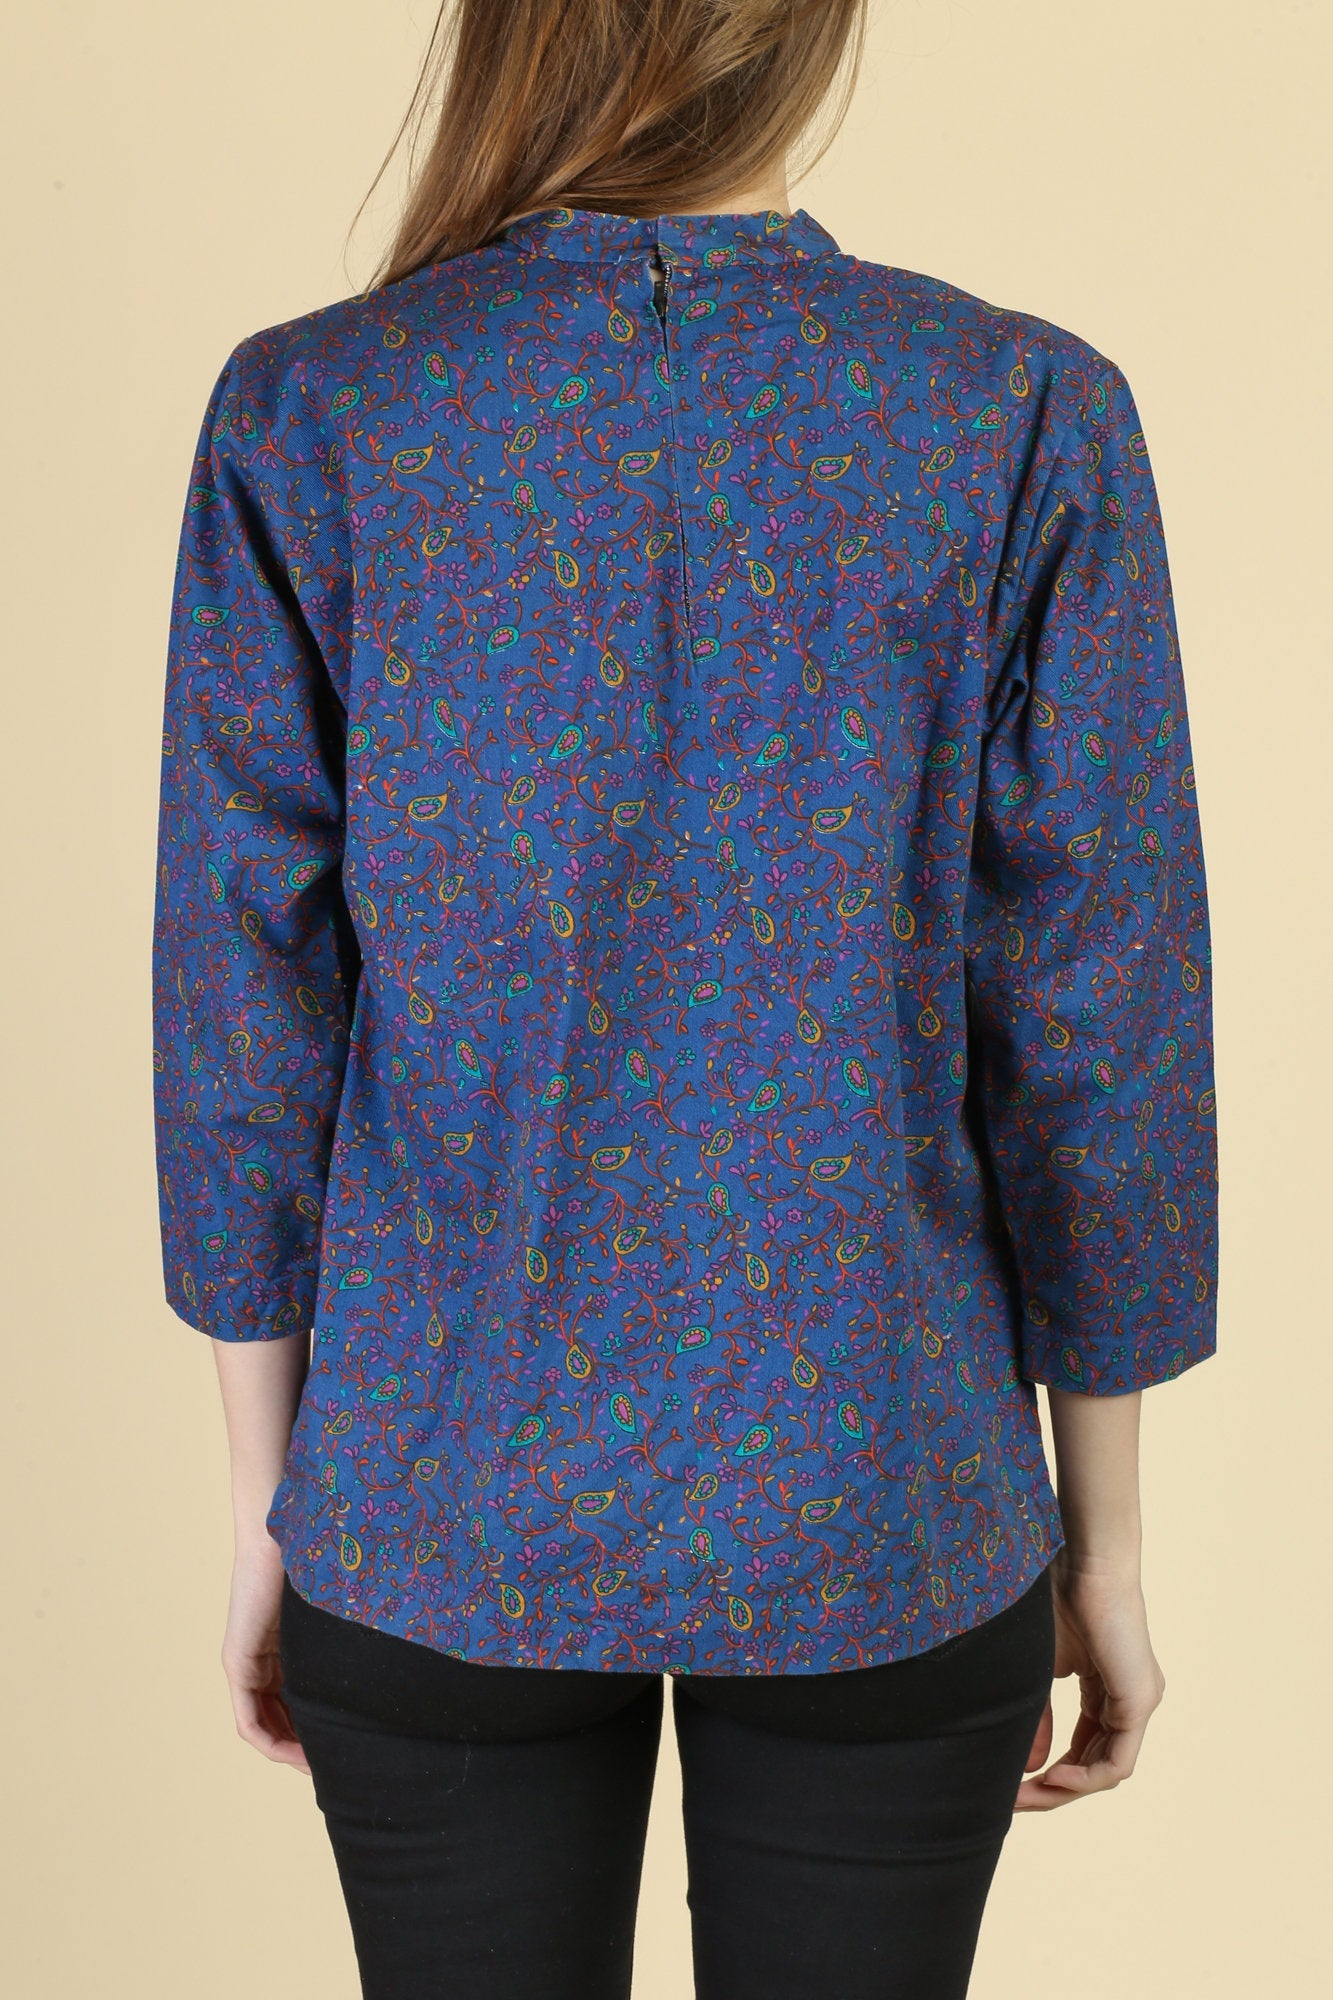 60s Paisley Tunic Top - Medium